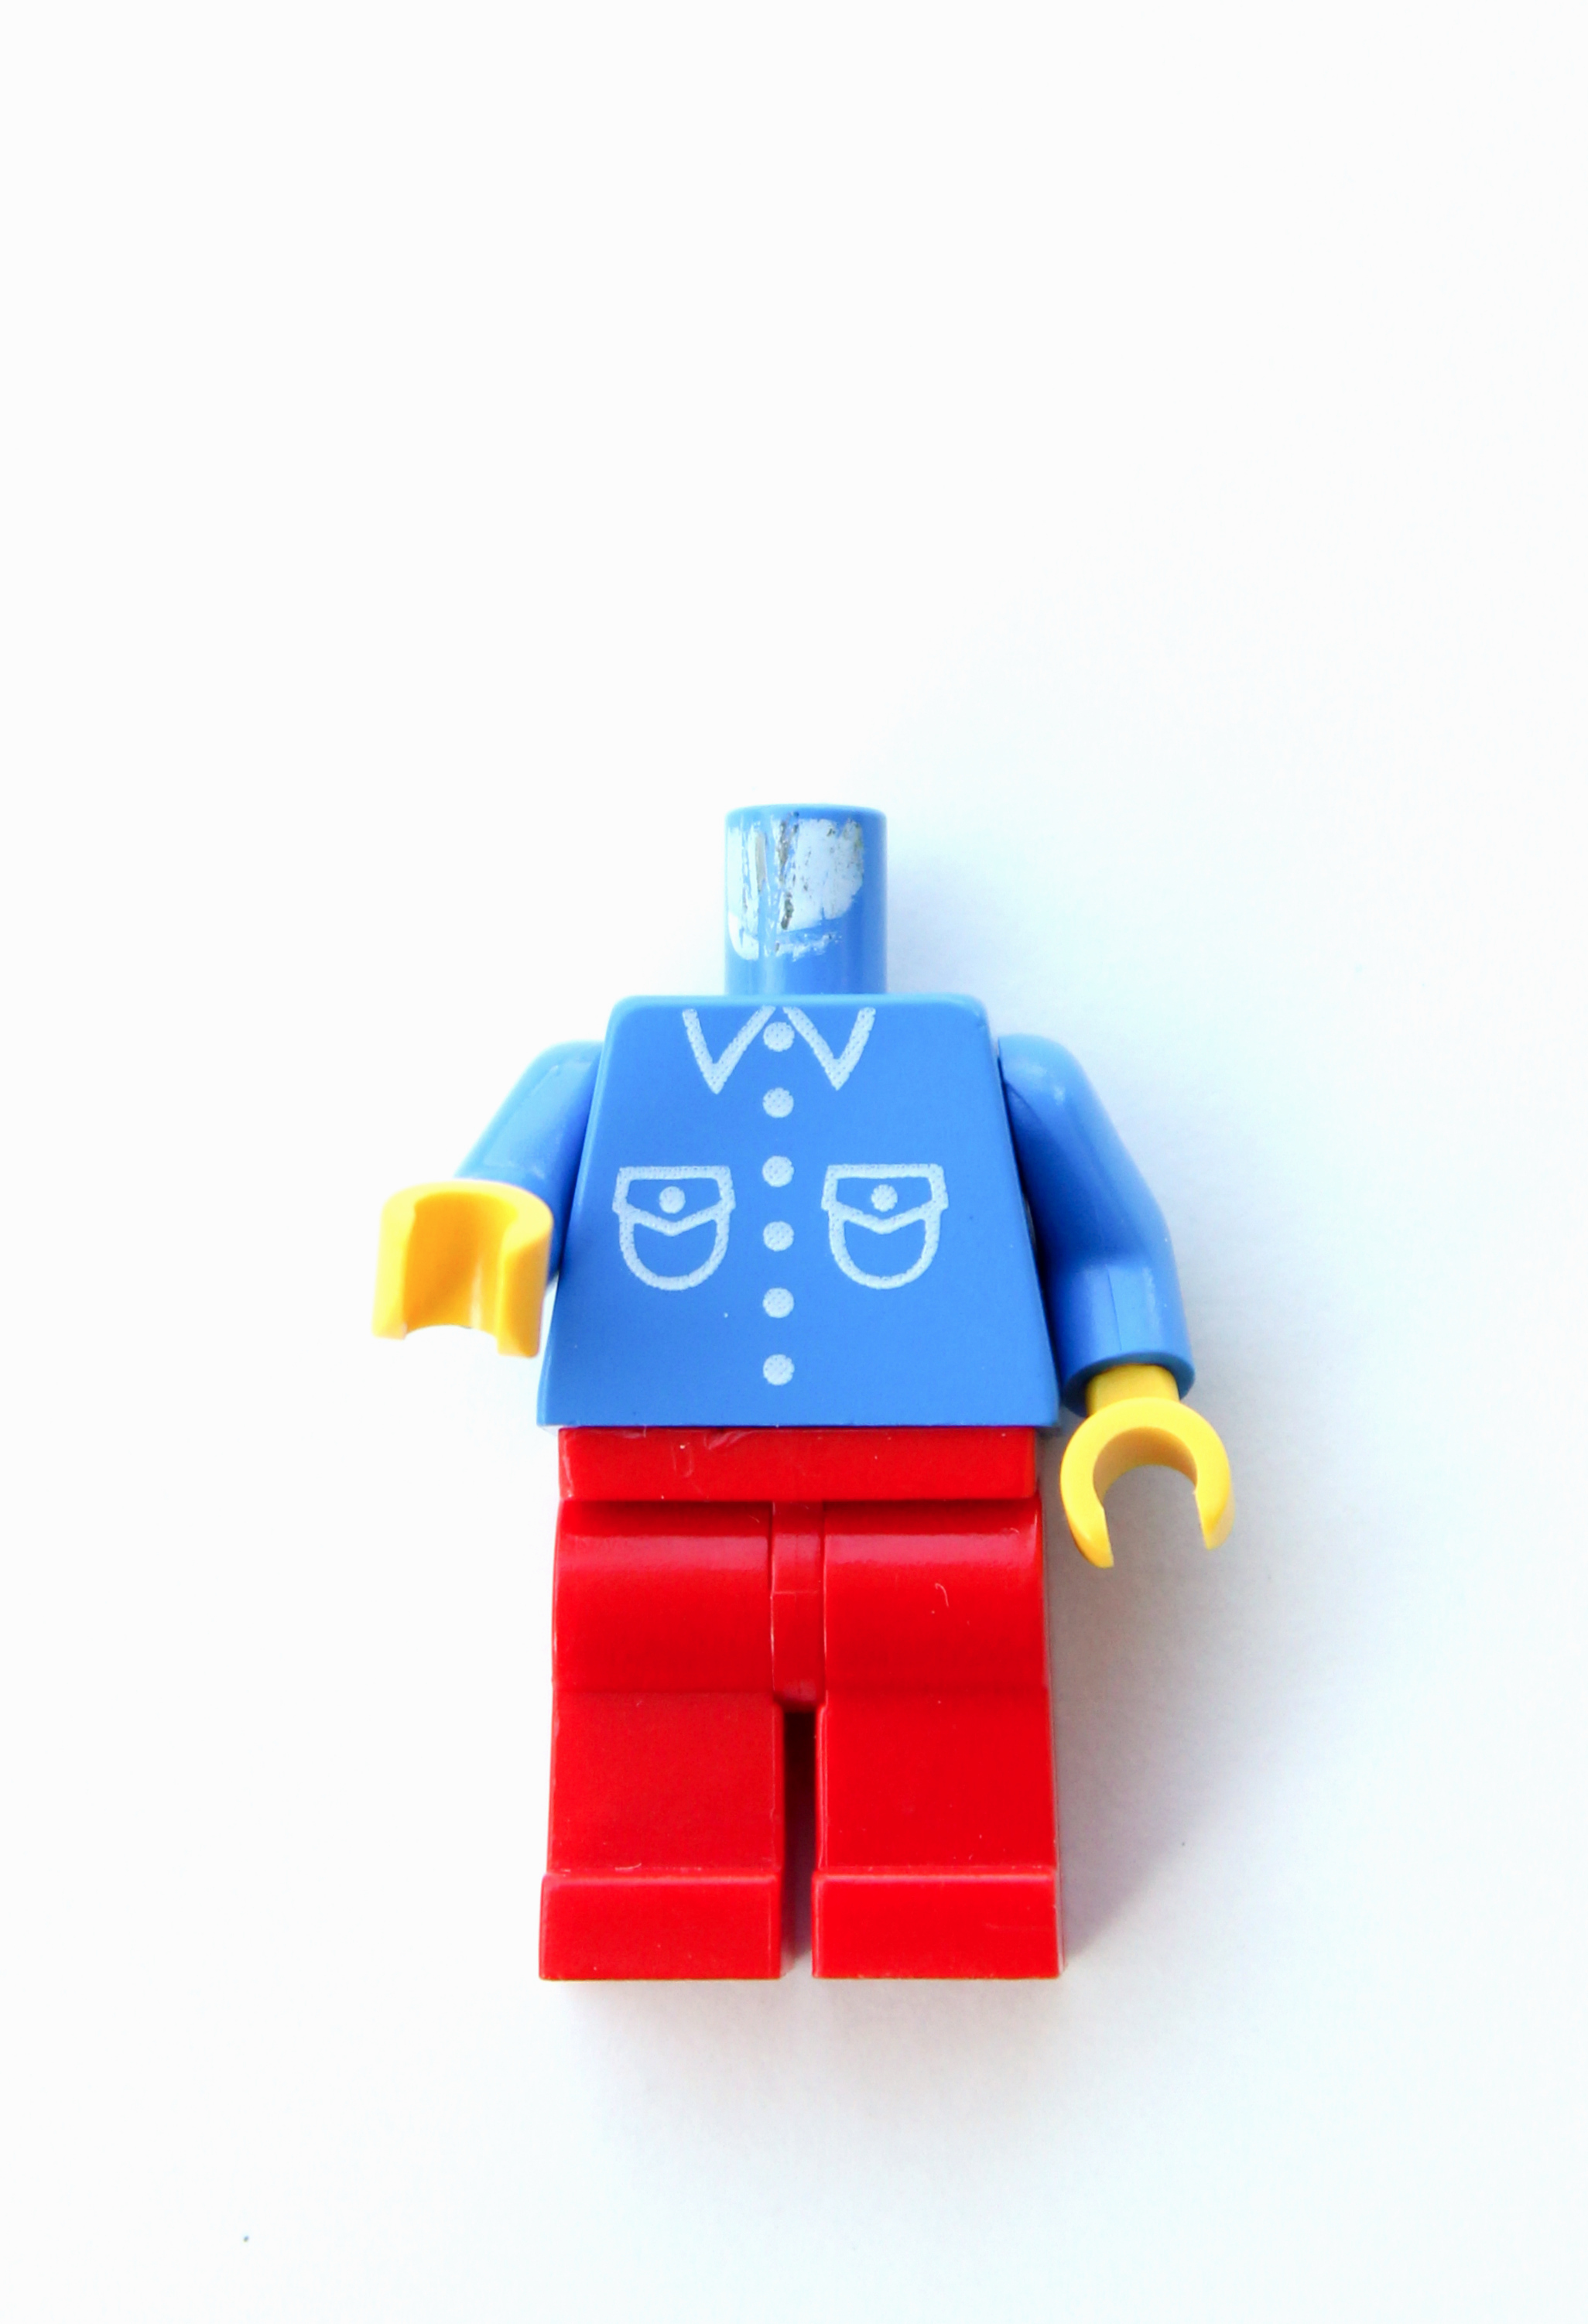 pin-the-lego-head-on-the-lego-guy-11x16-final